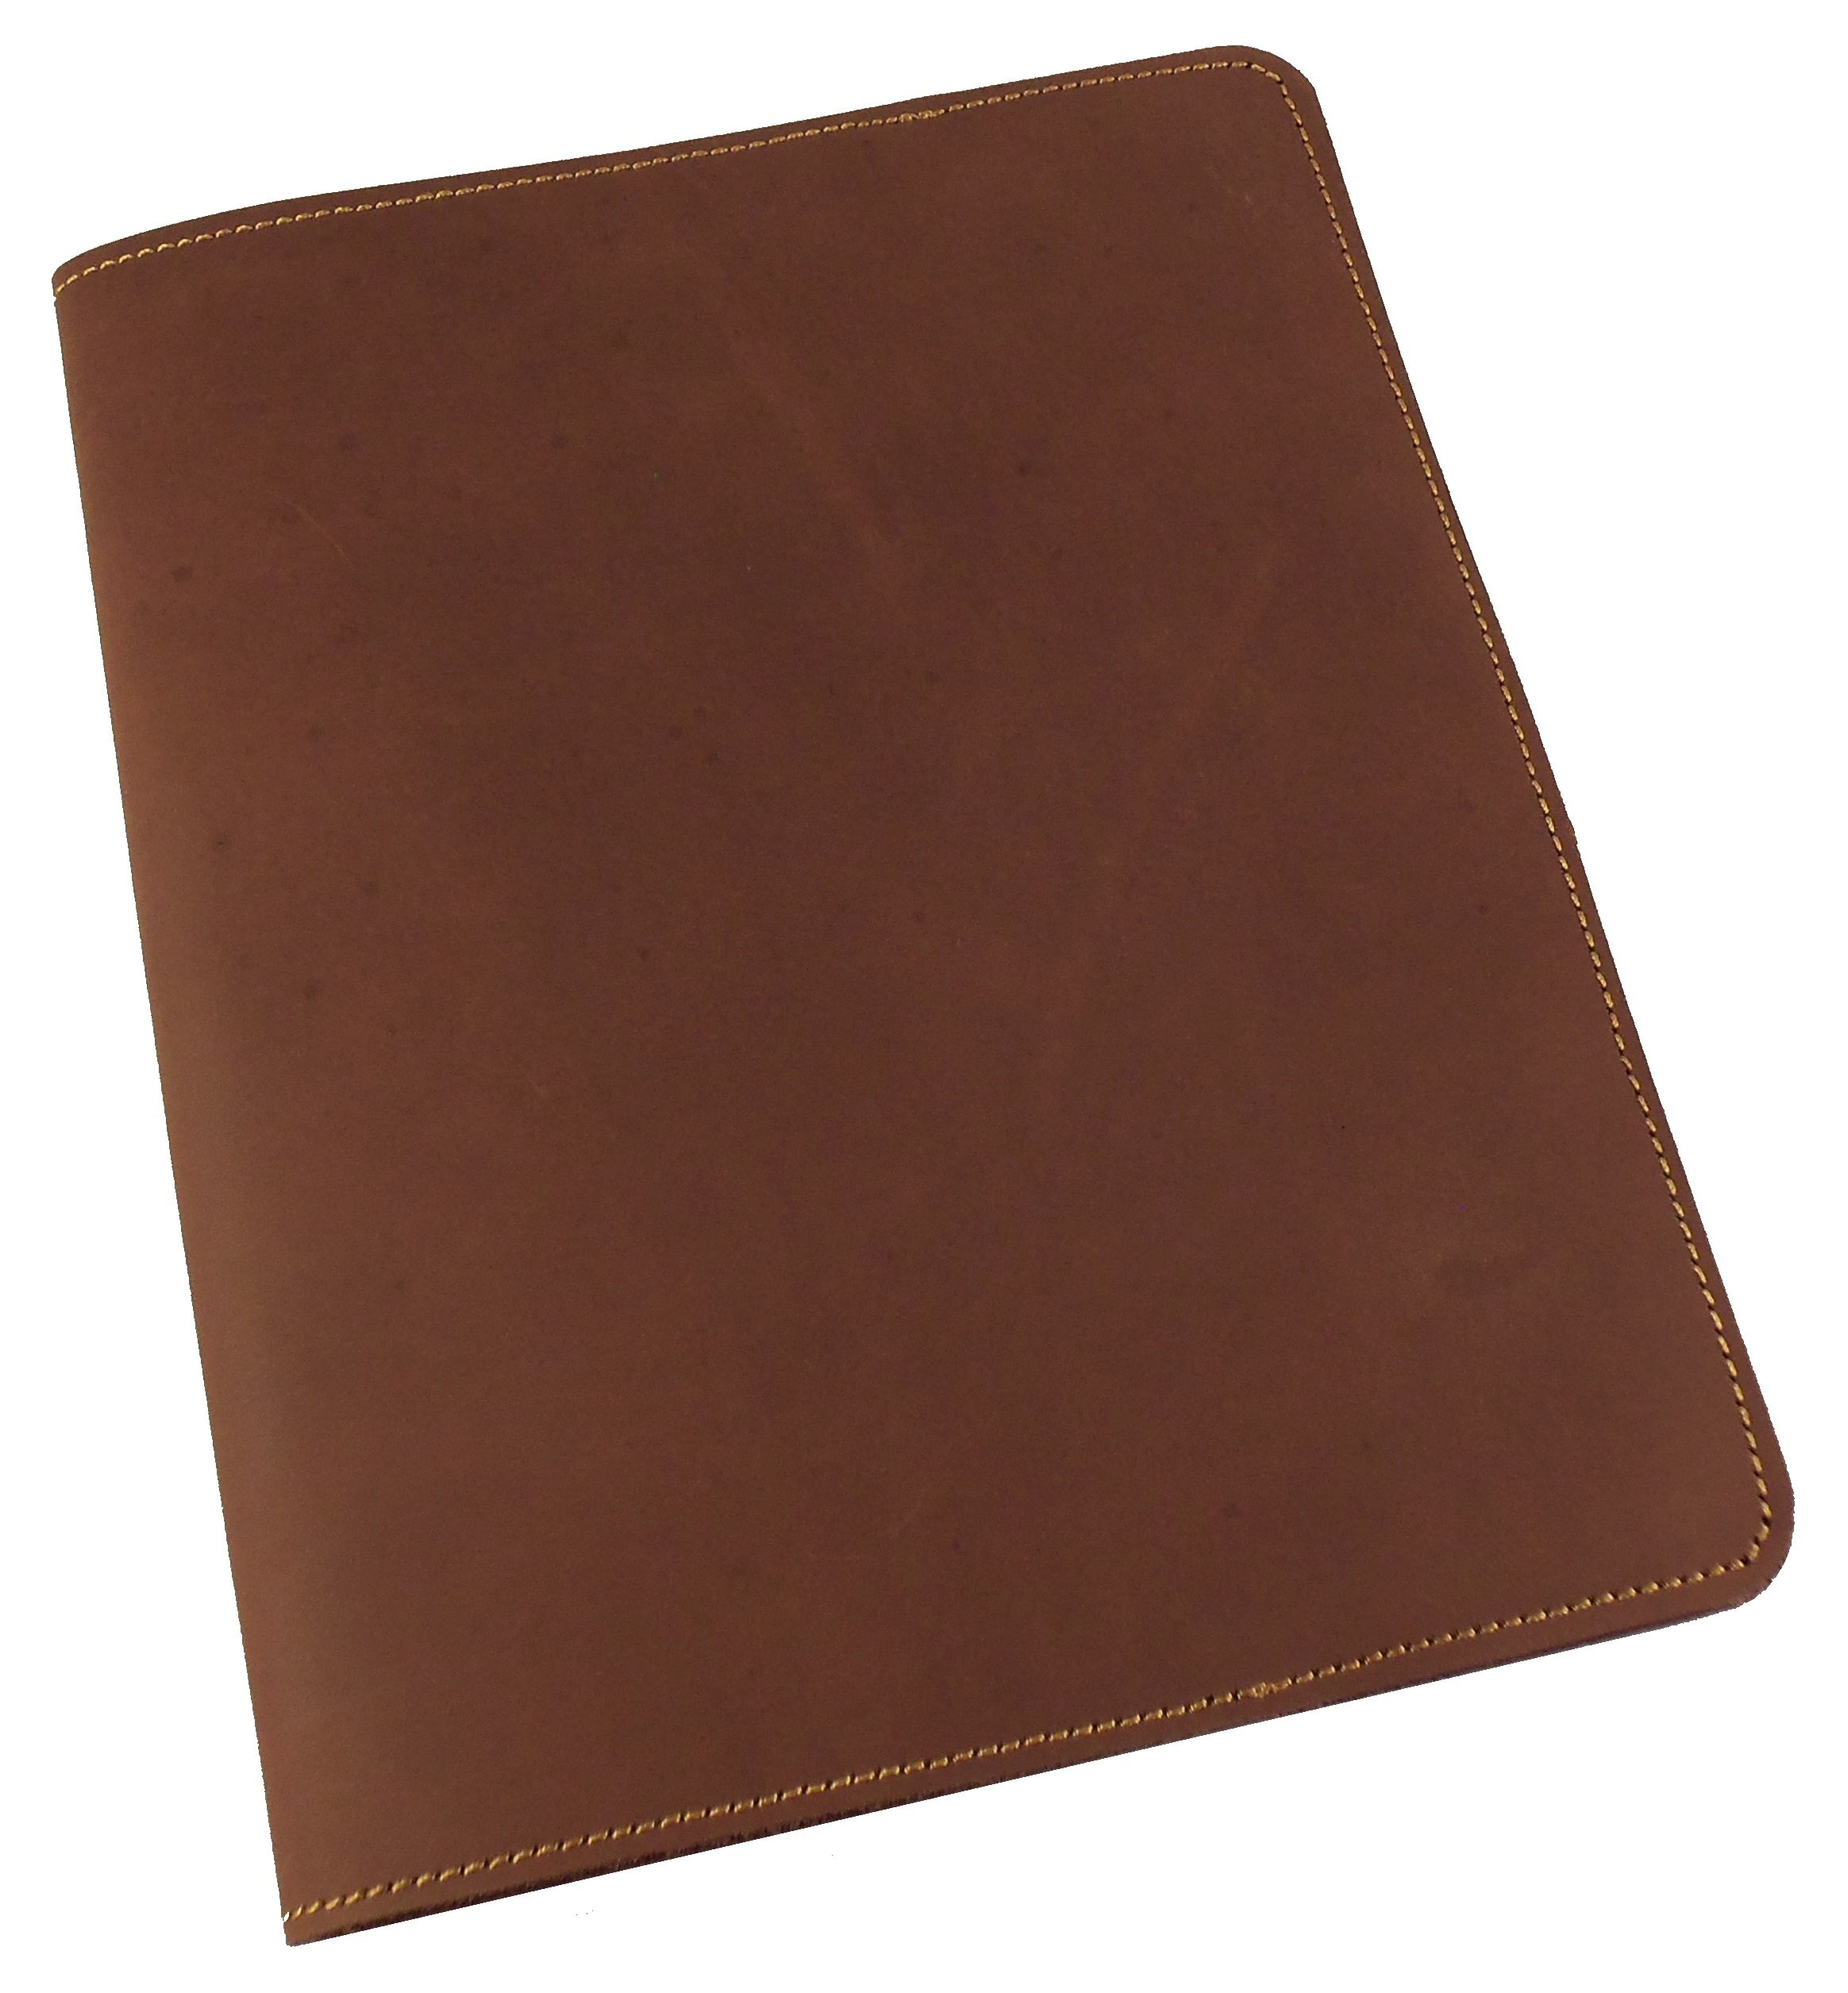 Refillable Leather Composition Notebook by Rustic Ridge - Leather Notebook Cover - Composition Book Cover (Dark Brown) by Rustic Ridge Leather